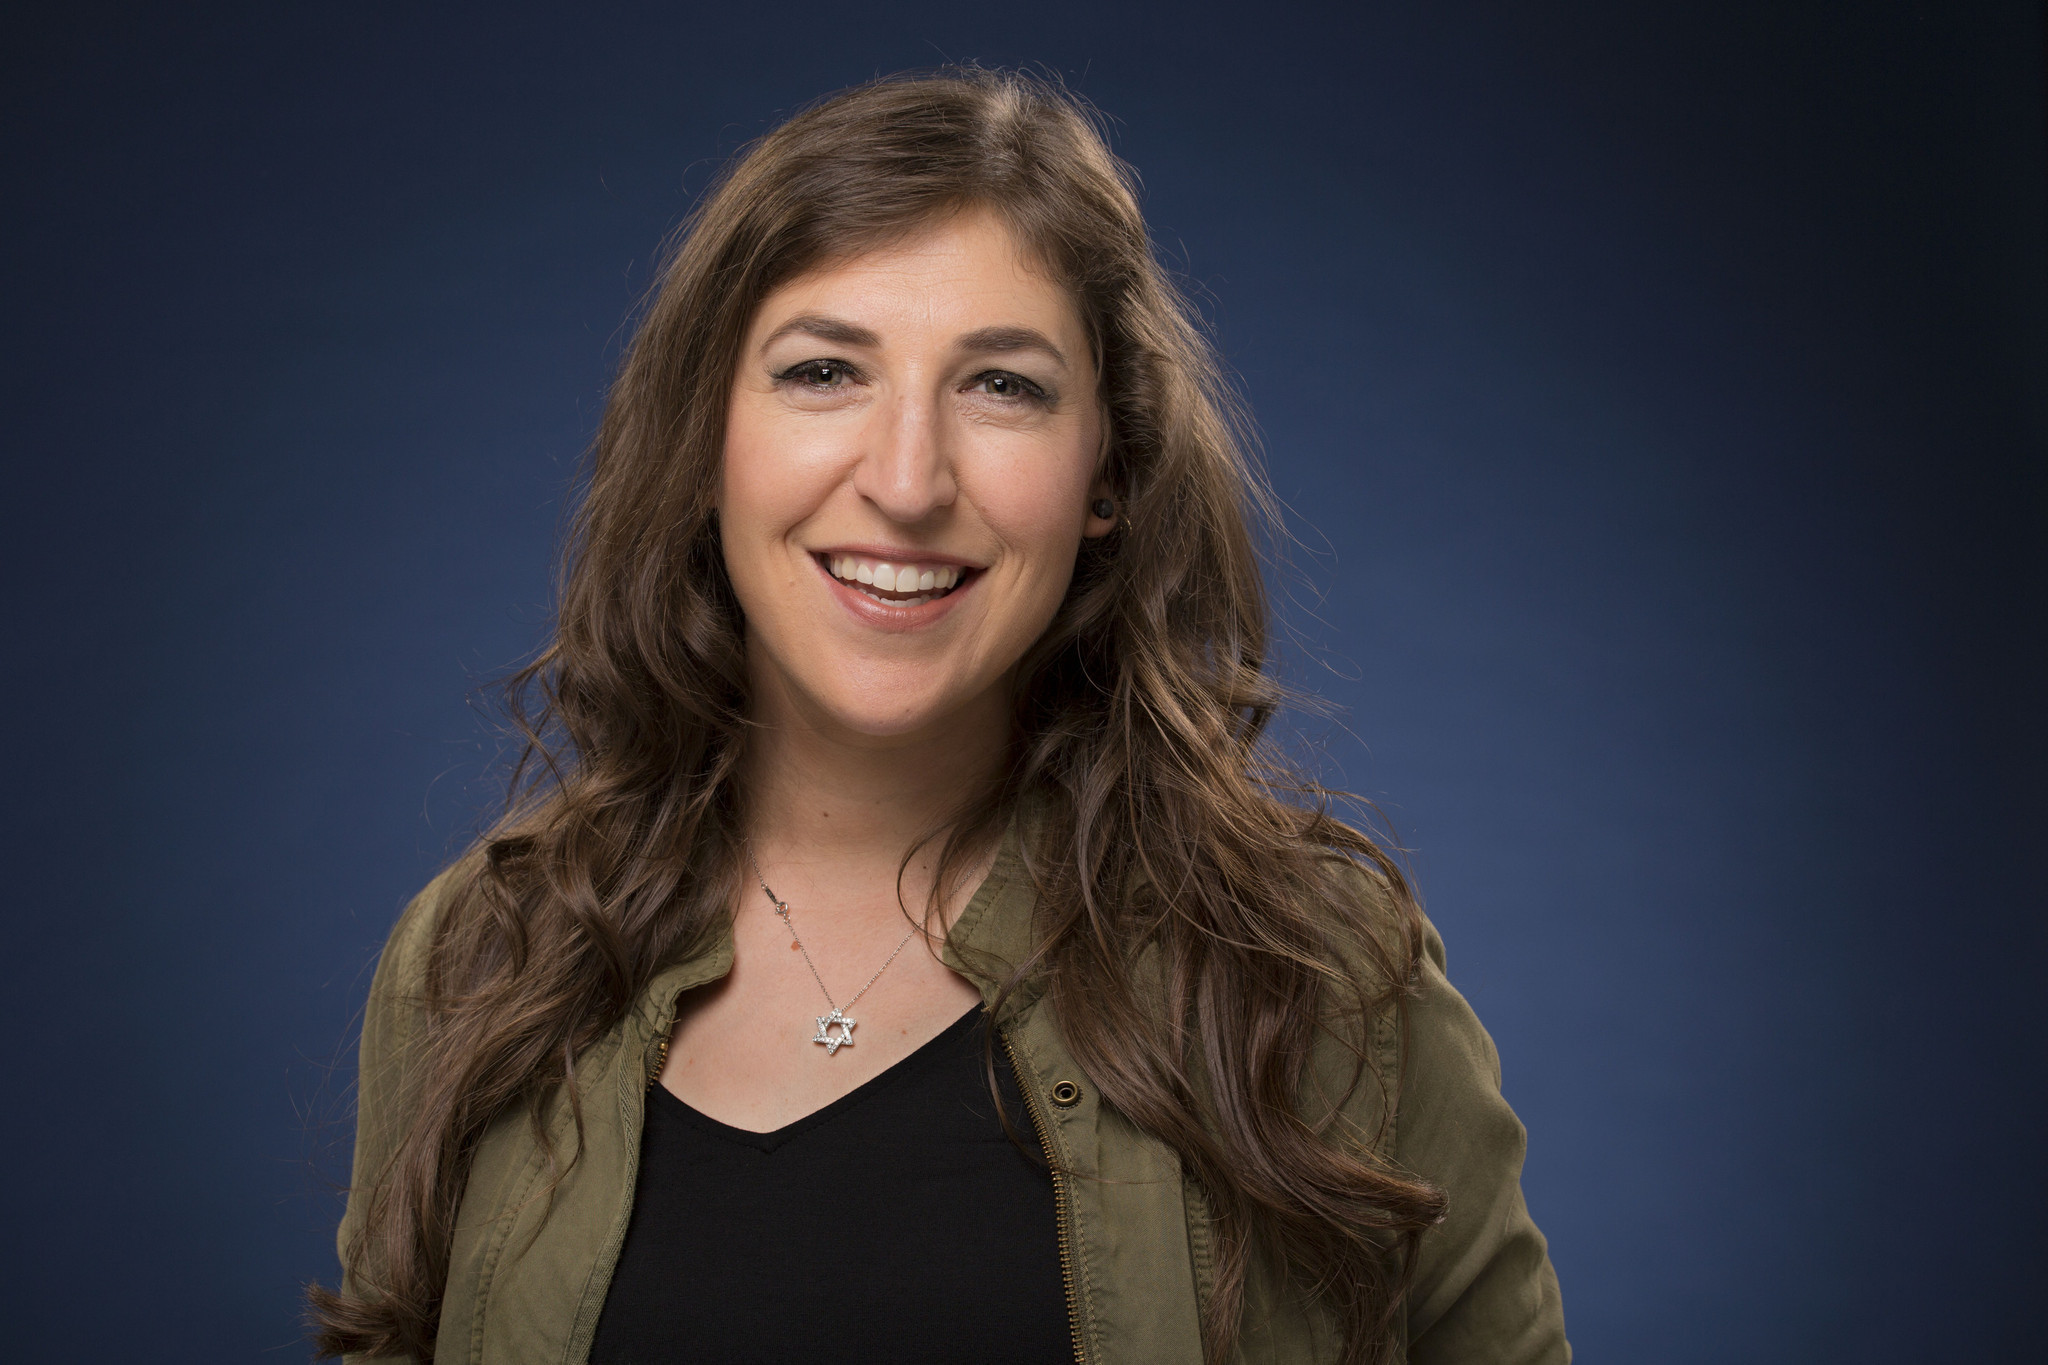 Mayim Bialik on religion in Hollywood: Its never going